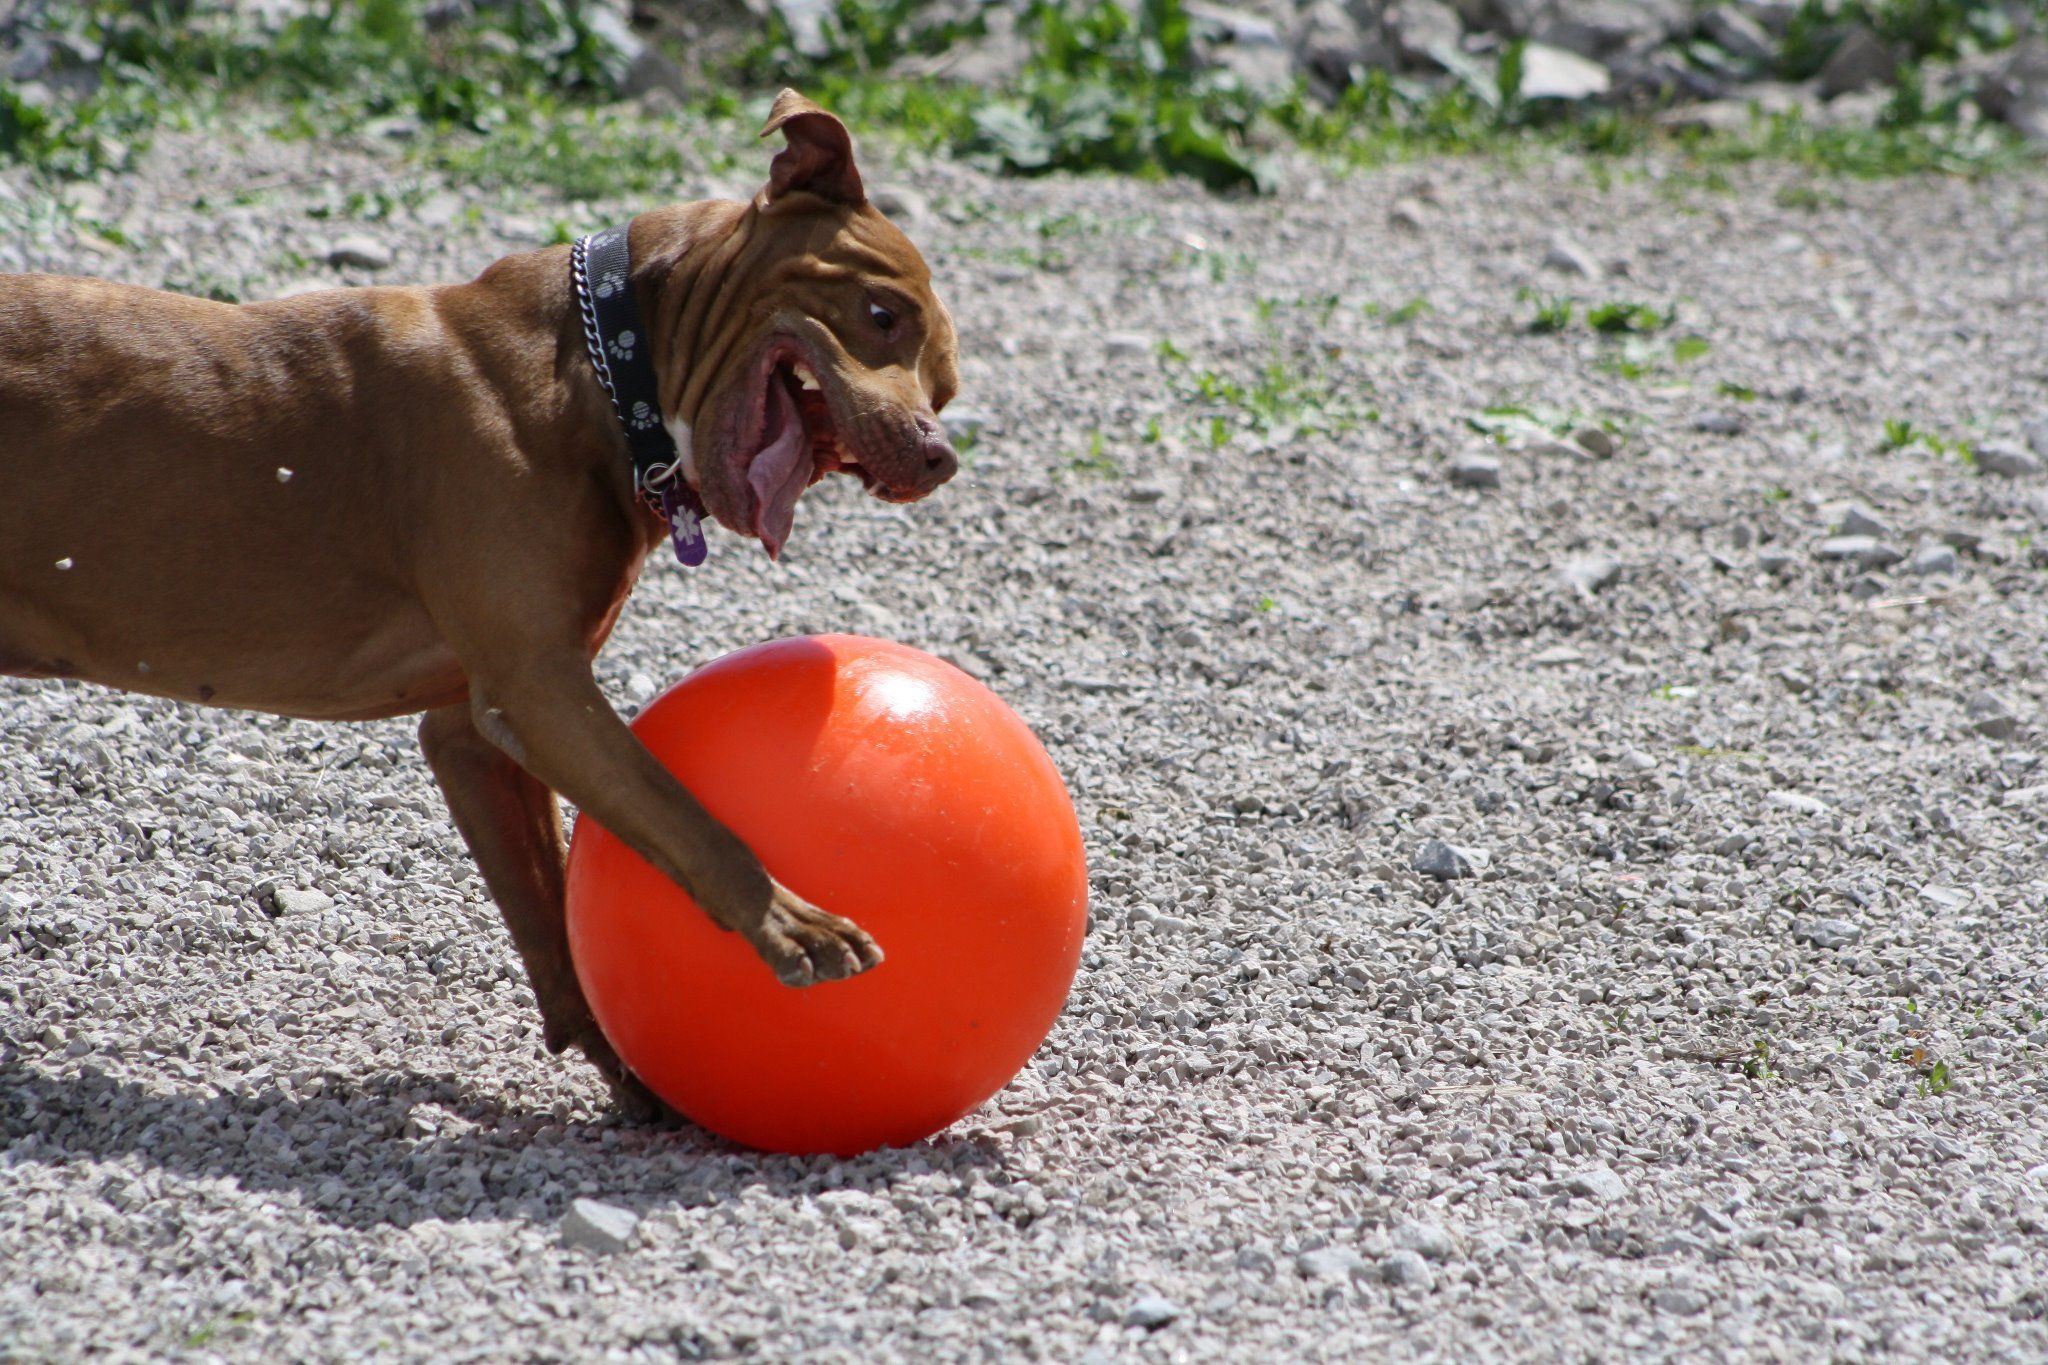 Pin On High Energy Dogs Love The Varsity Ball